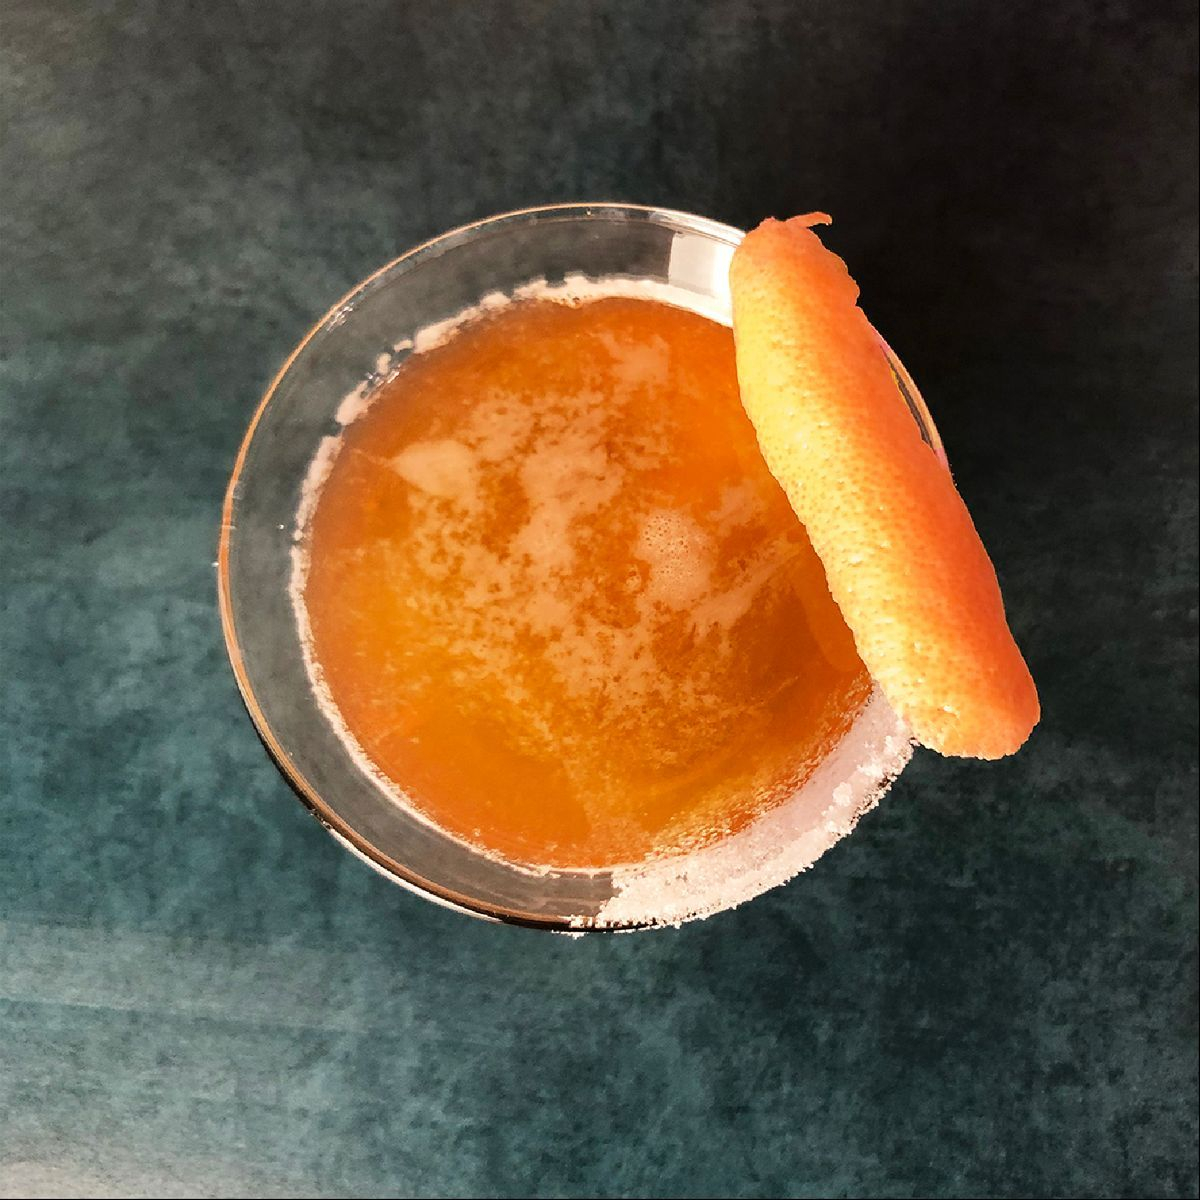 The Sidecar is a true classic and a must-try as you journey through the greatest cocktail sours. It's a brandy-based cocktail that got its name from either a French or English bar (depending on whom you ask) that invented the drink for a customer who arrived in a motorcycle sidecar when he frequented the spot. When we made this cocktail recently, a guest said,